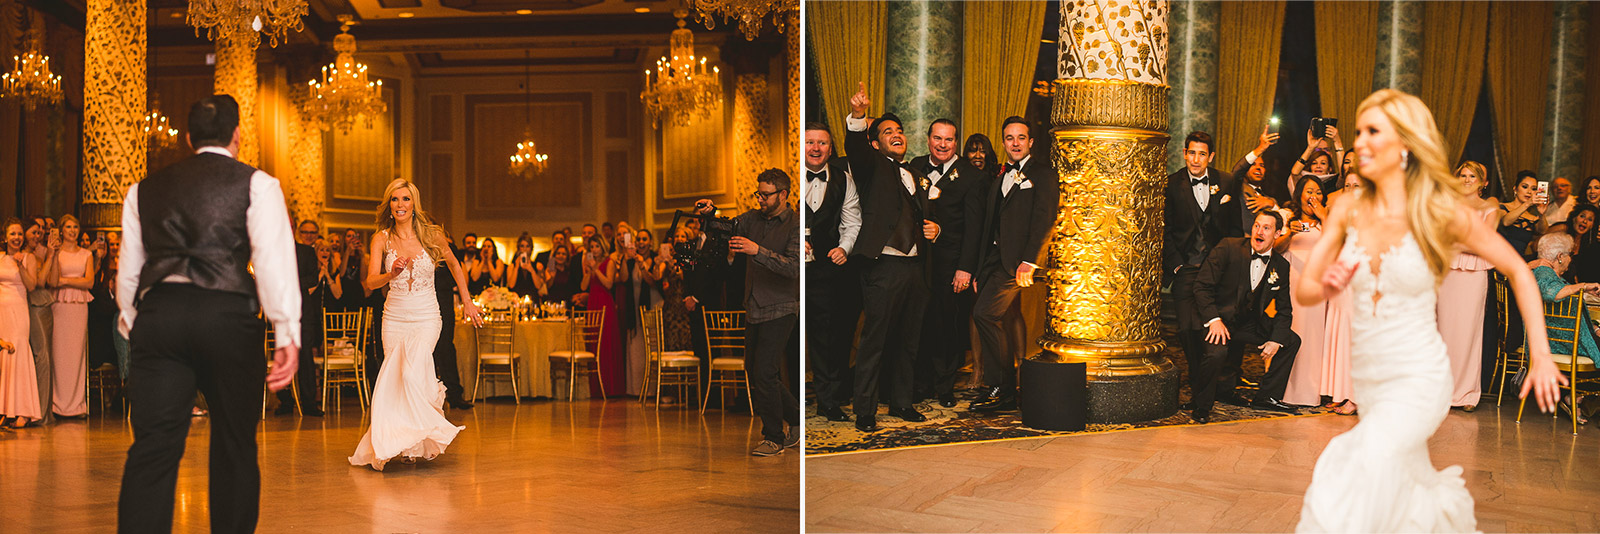 56 chicago wedding photography at the drake - Kayla + Terry // Drake Hotel Chicago Wedding Photos